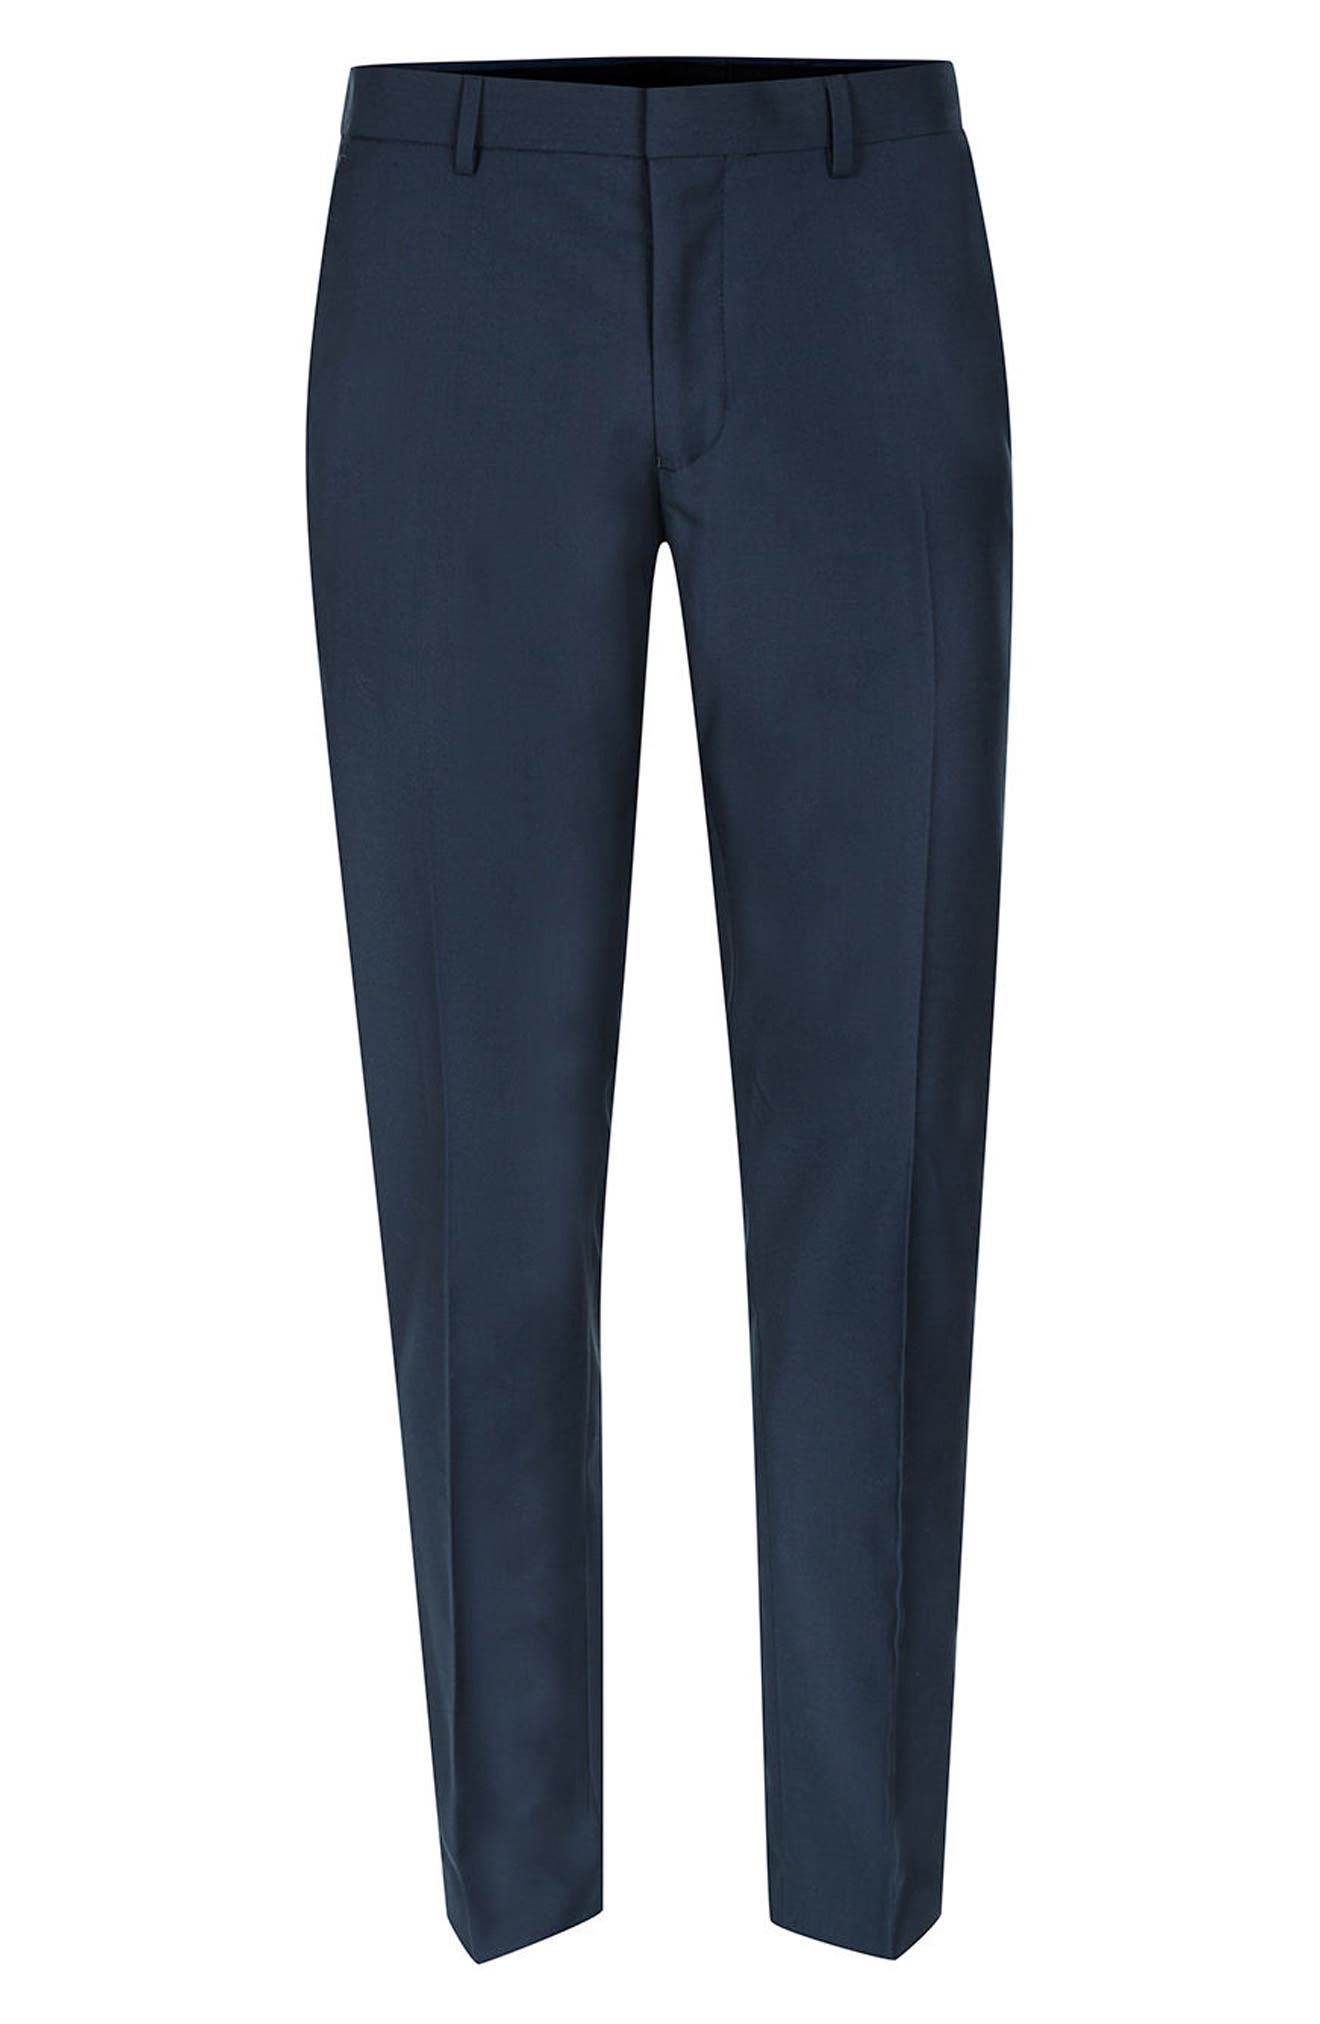 Skinny Fit Suit Trousers,                             Alternate thumbnail 4, color,                             420